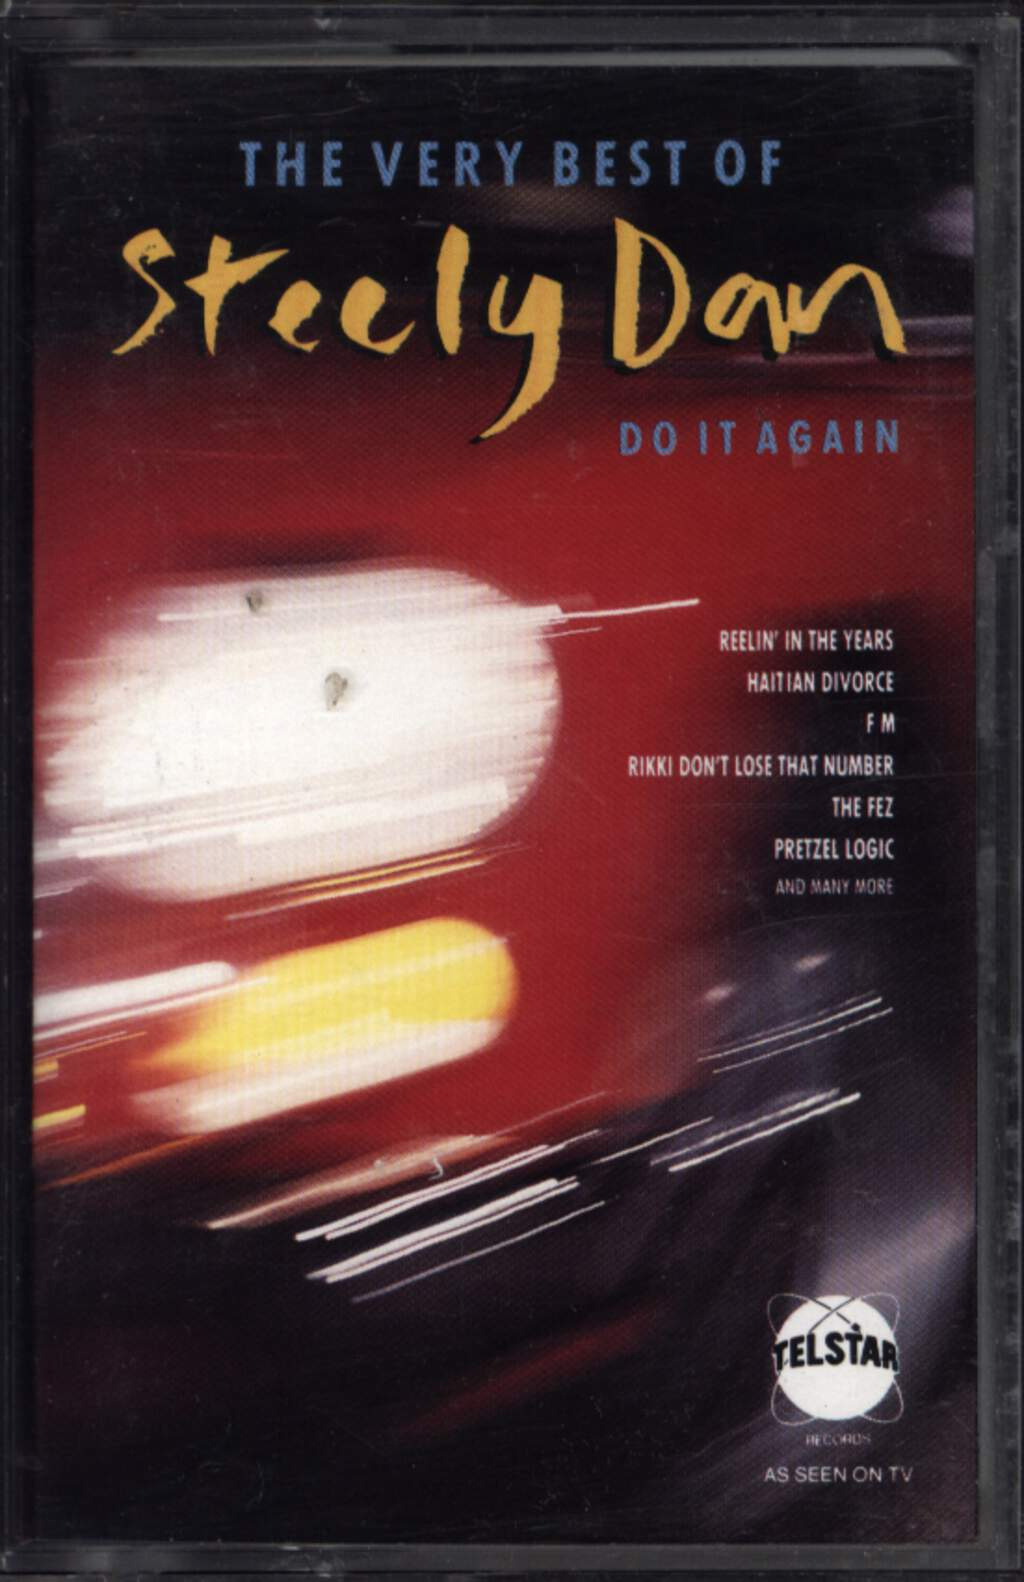 Steely Dan: The Very Best Of Steely Dan - Do It Again, Compact Cassette